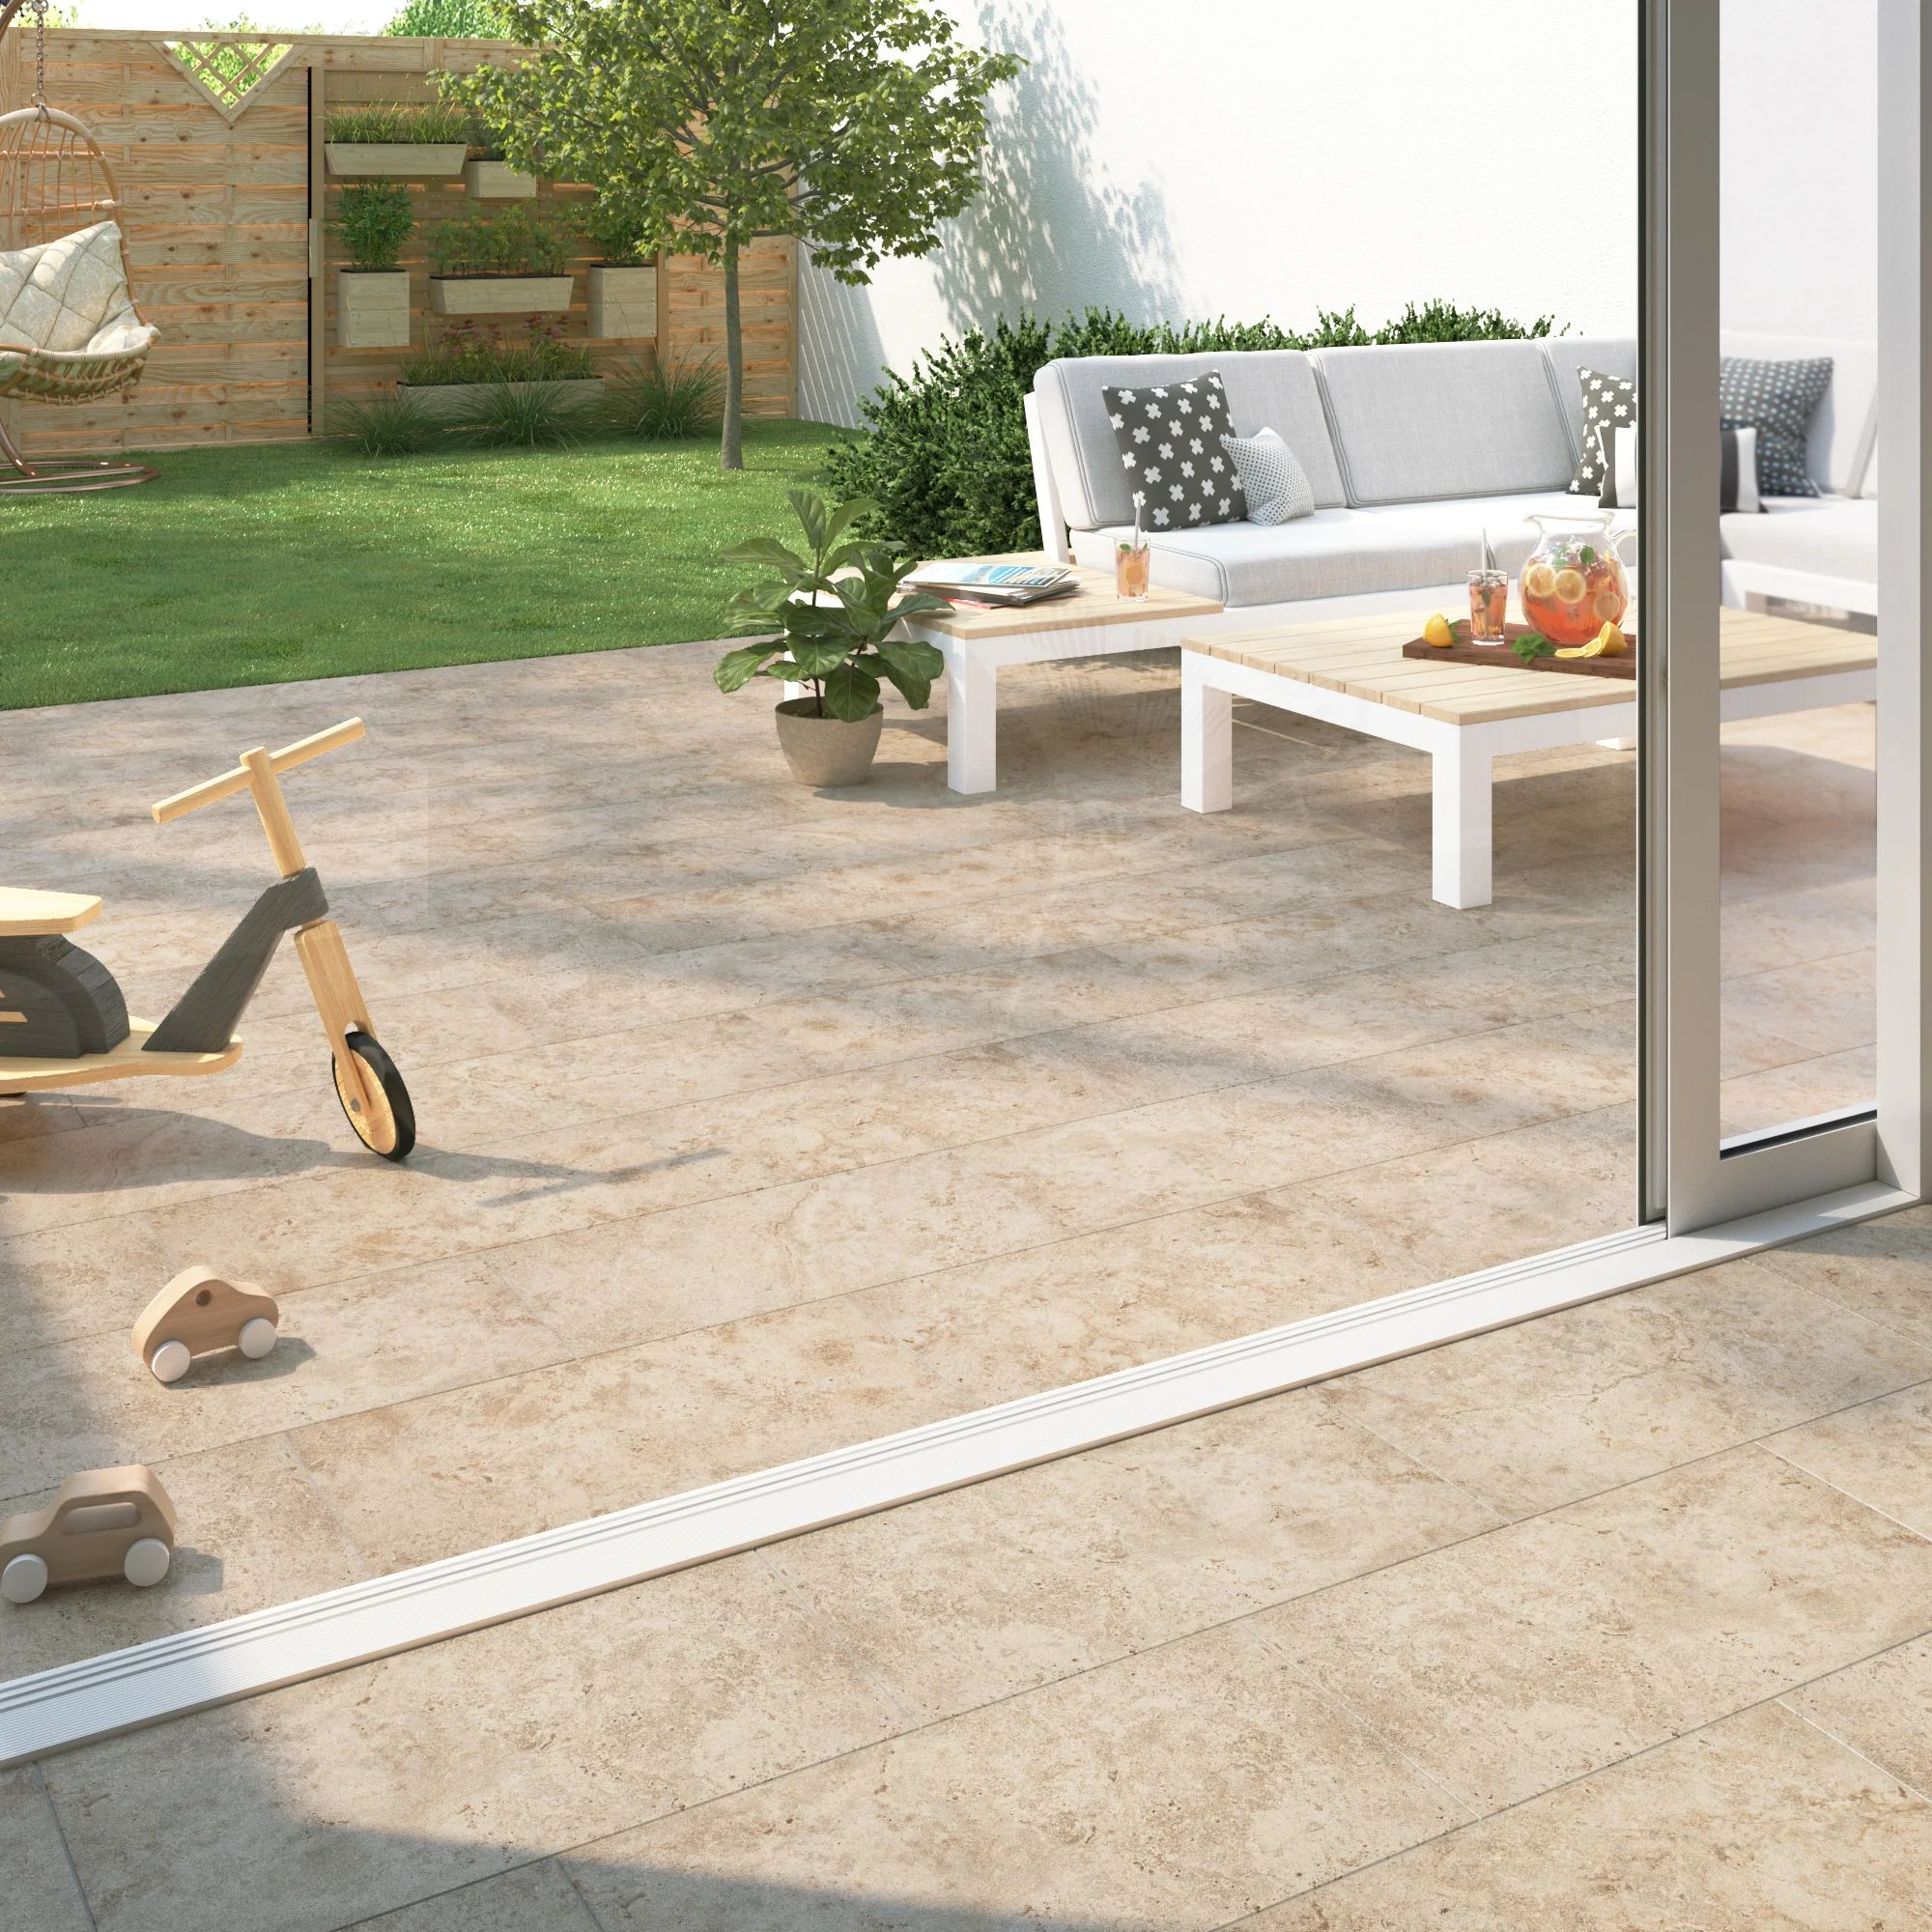 Carrelage Sol Exterieur Intenso Effet Travertin Beige Shelby L 30xl 60 Cm Leroy Merlin